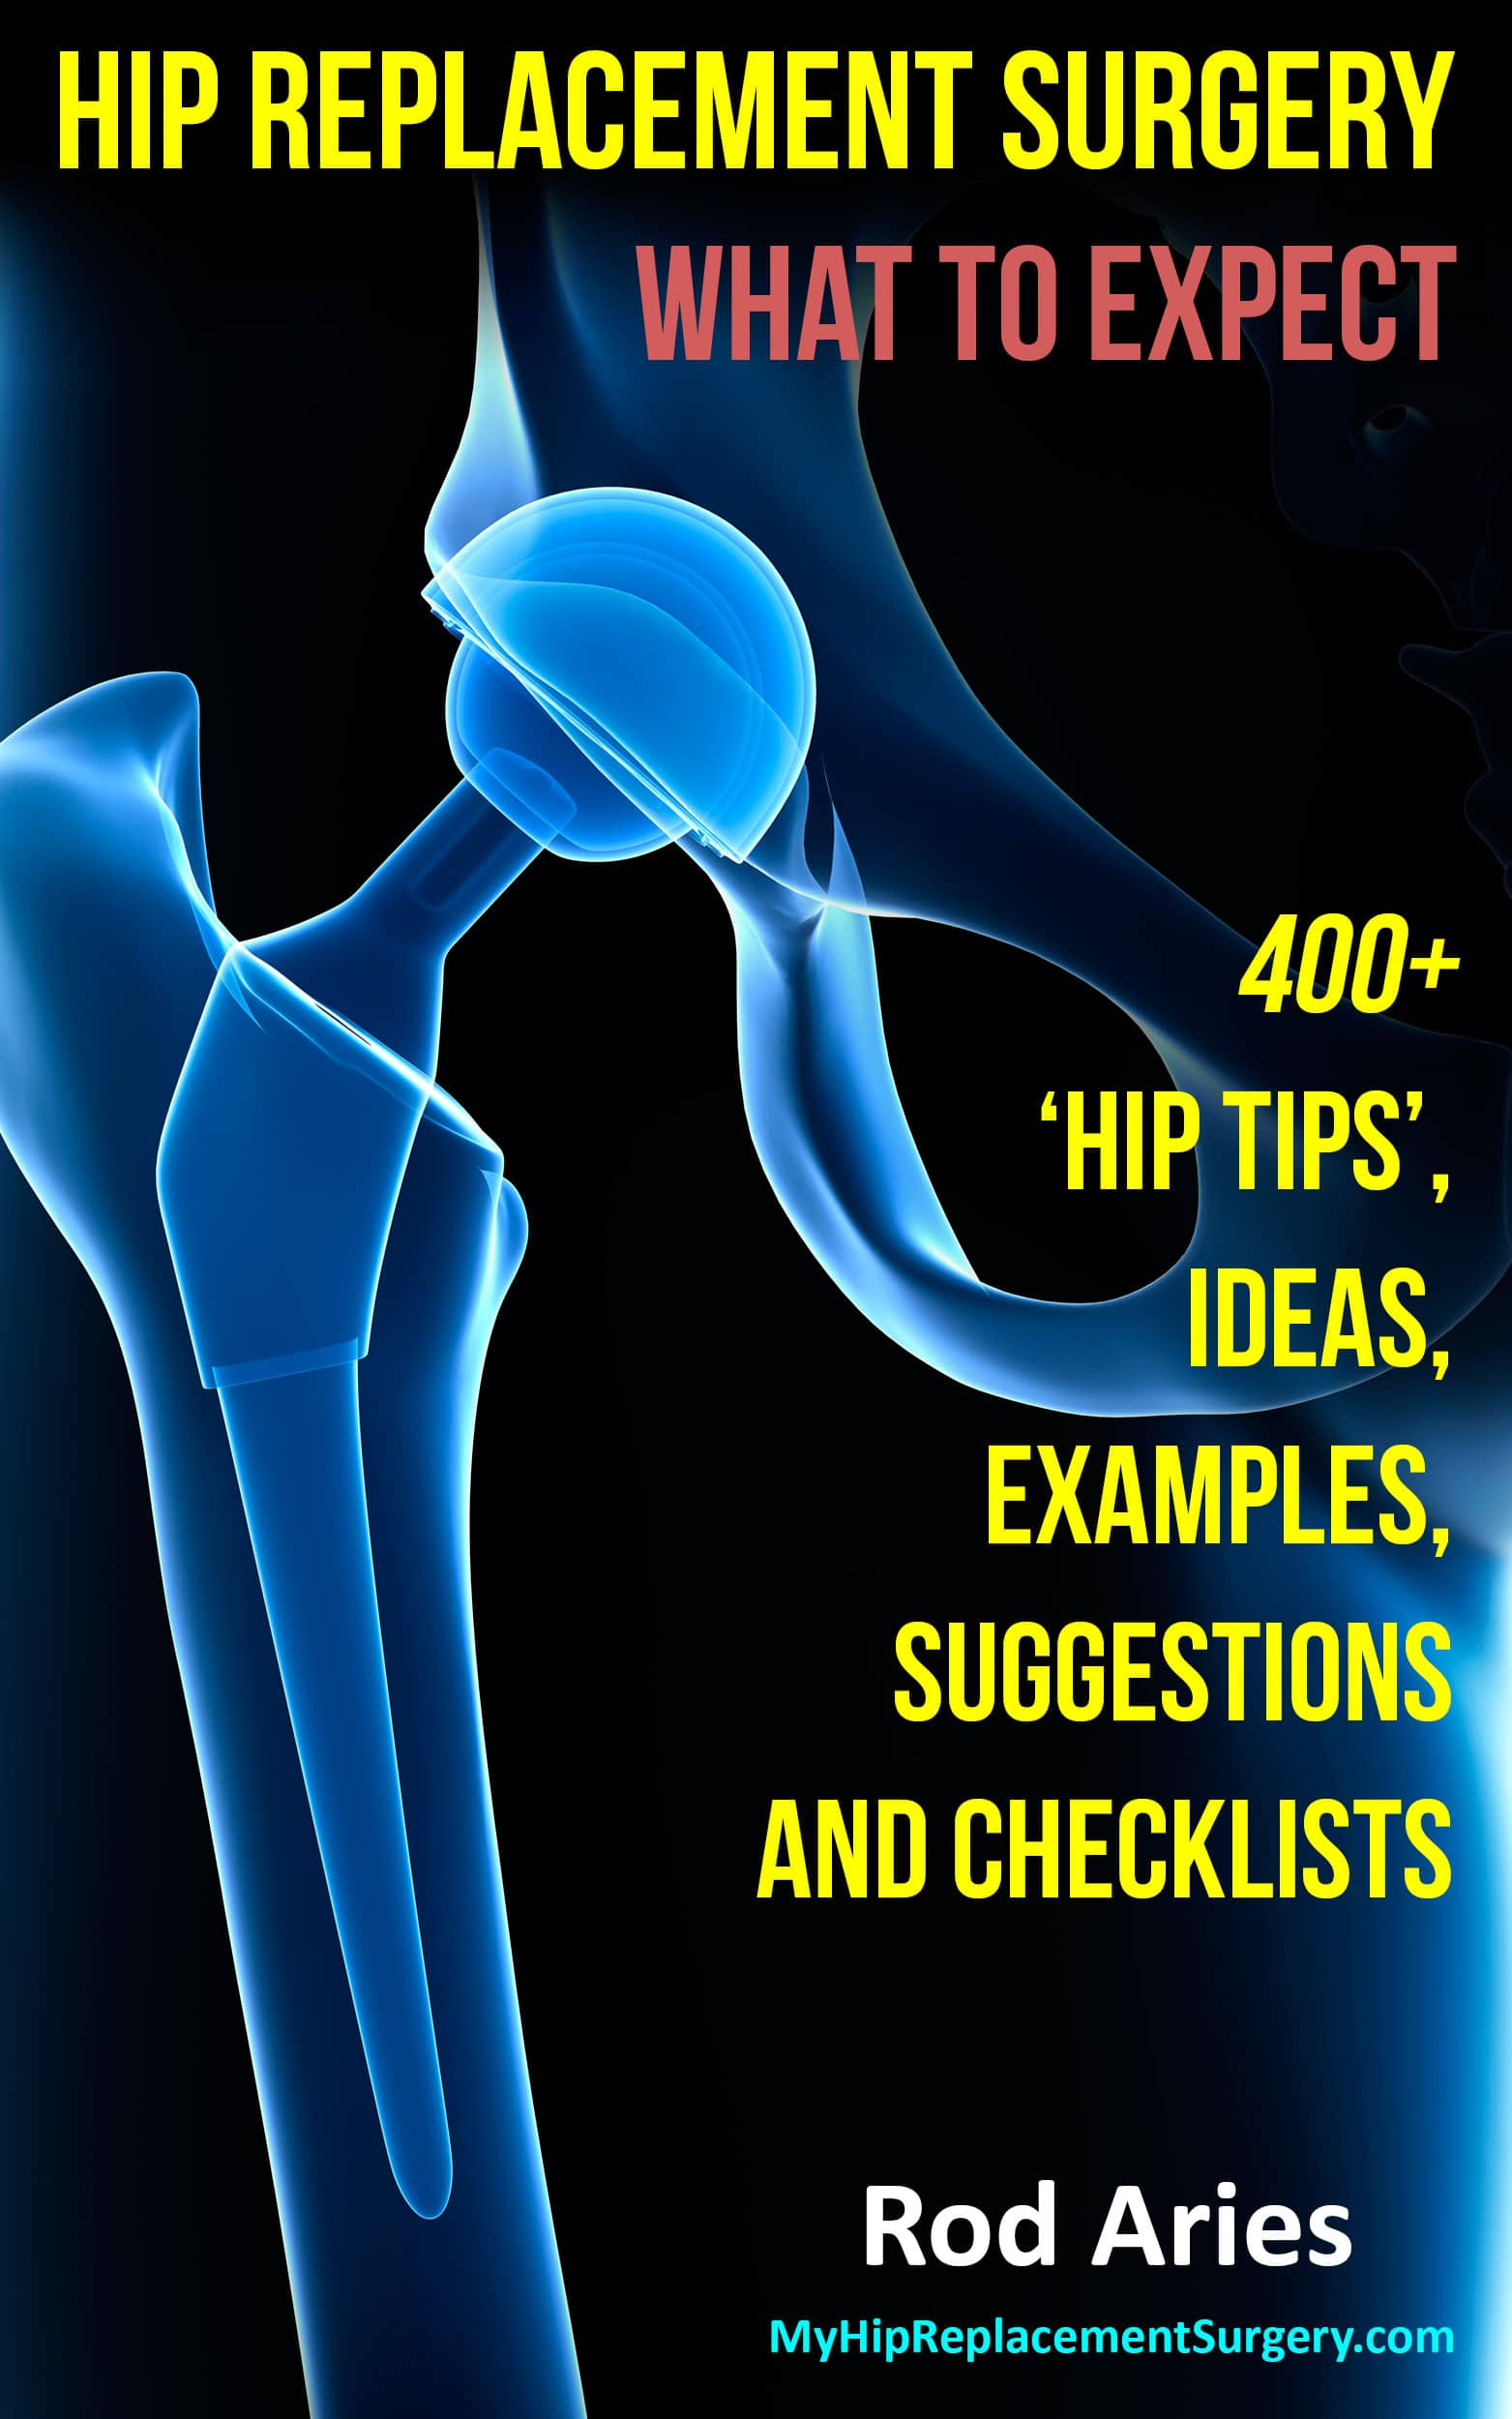 Buy The Book  My Hip Replacement Surgery What To Expect